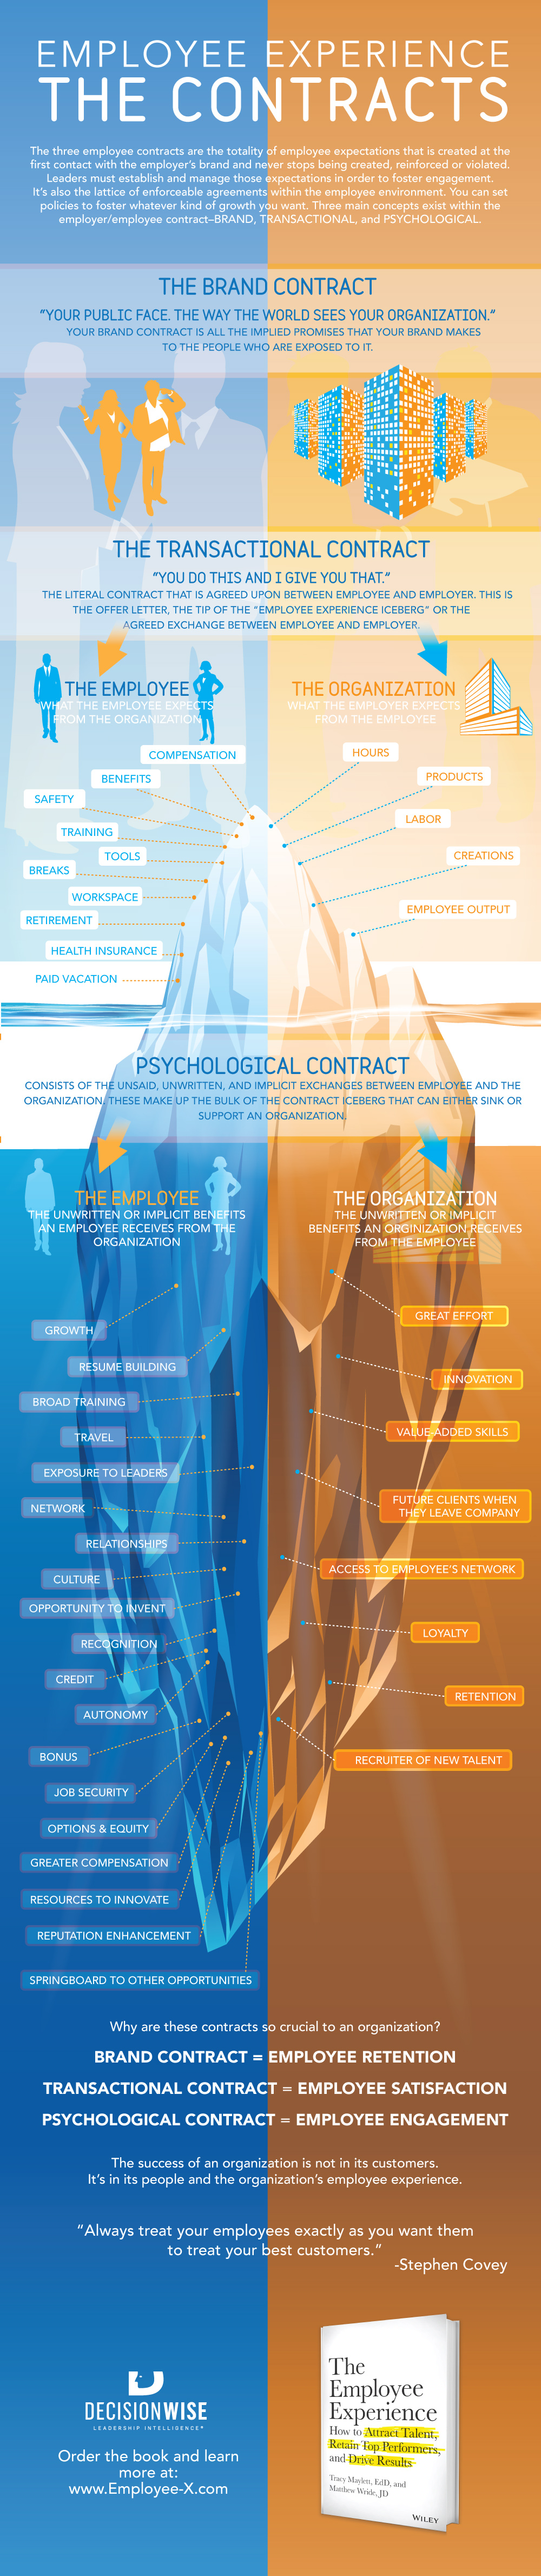 Infographic: The 3 Employee Experience Contracts